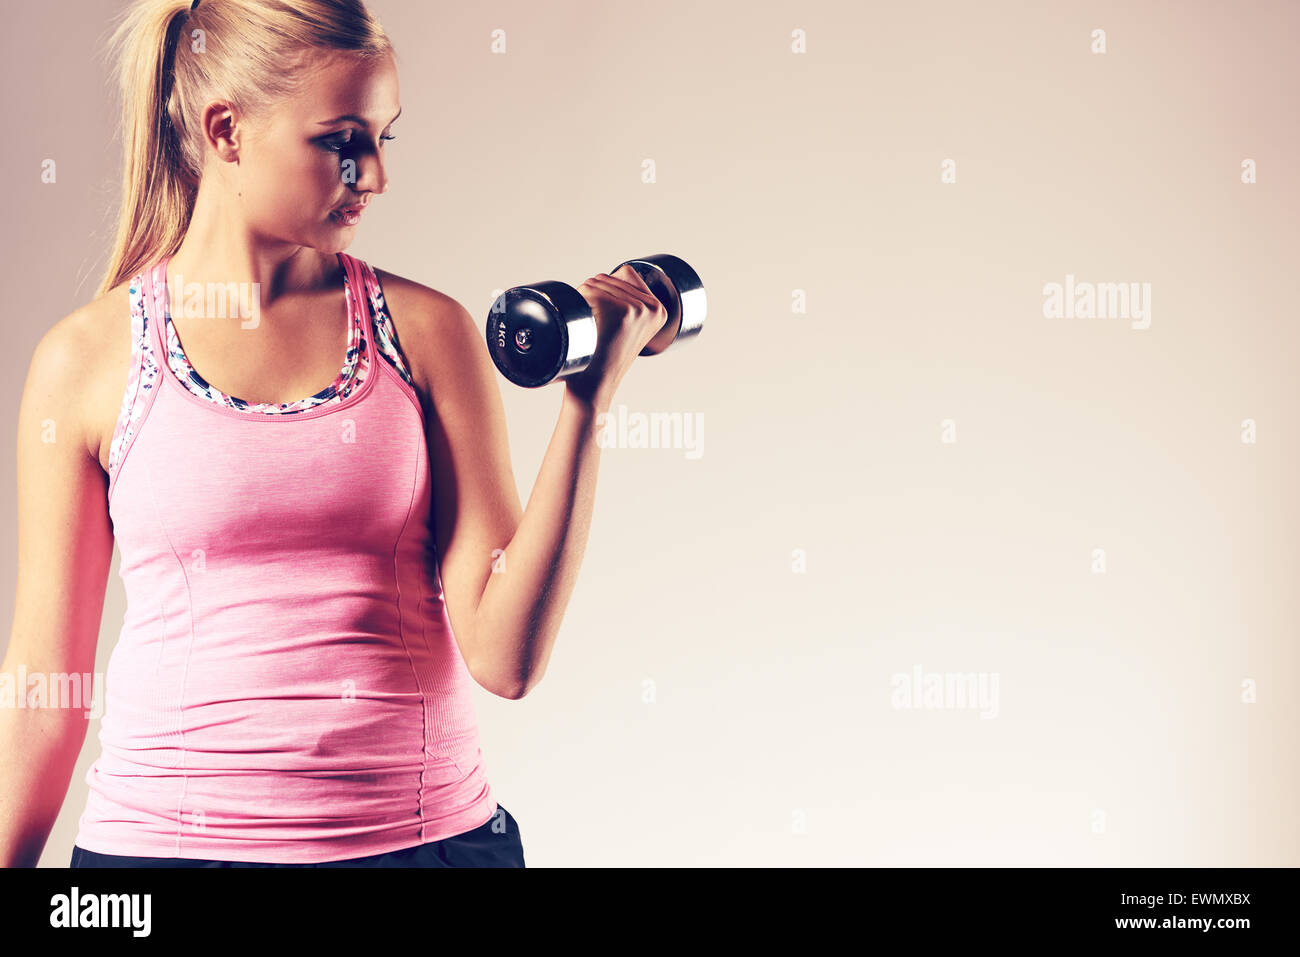 Young woman exercising upper body doing a bicep curl with a free weight. - Stock Image